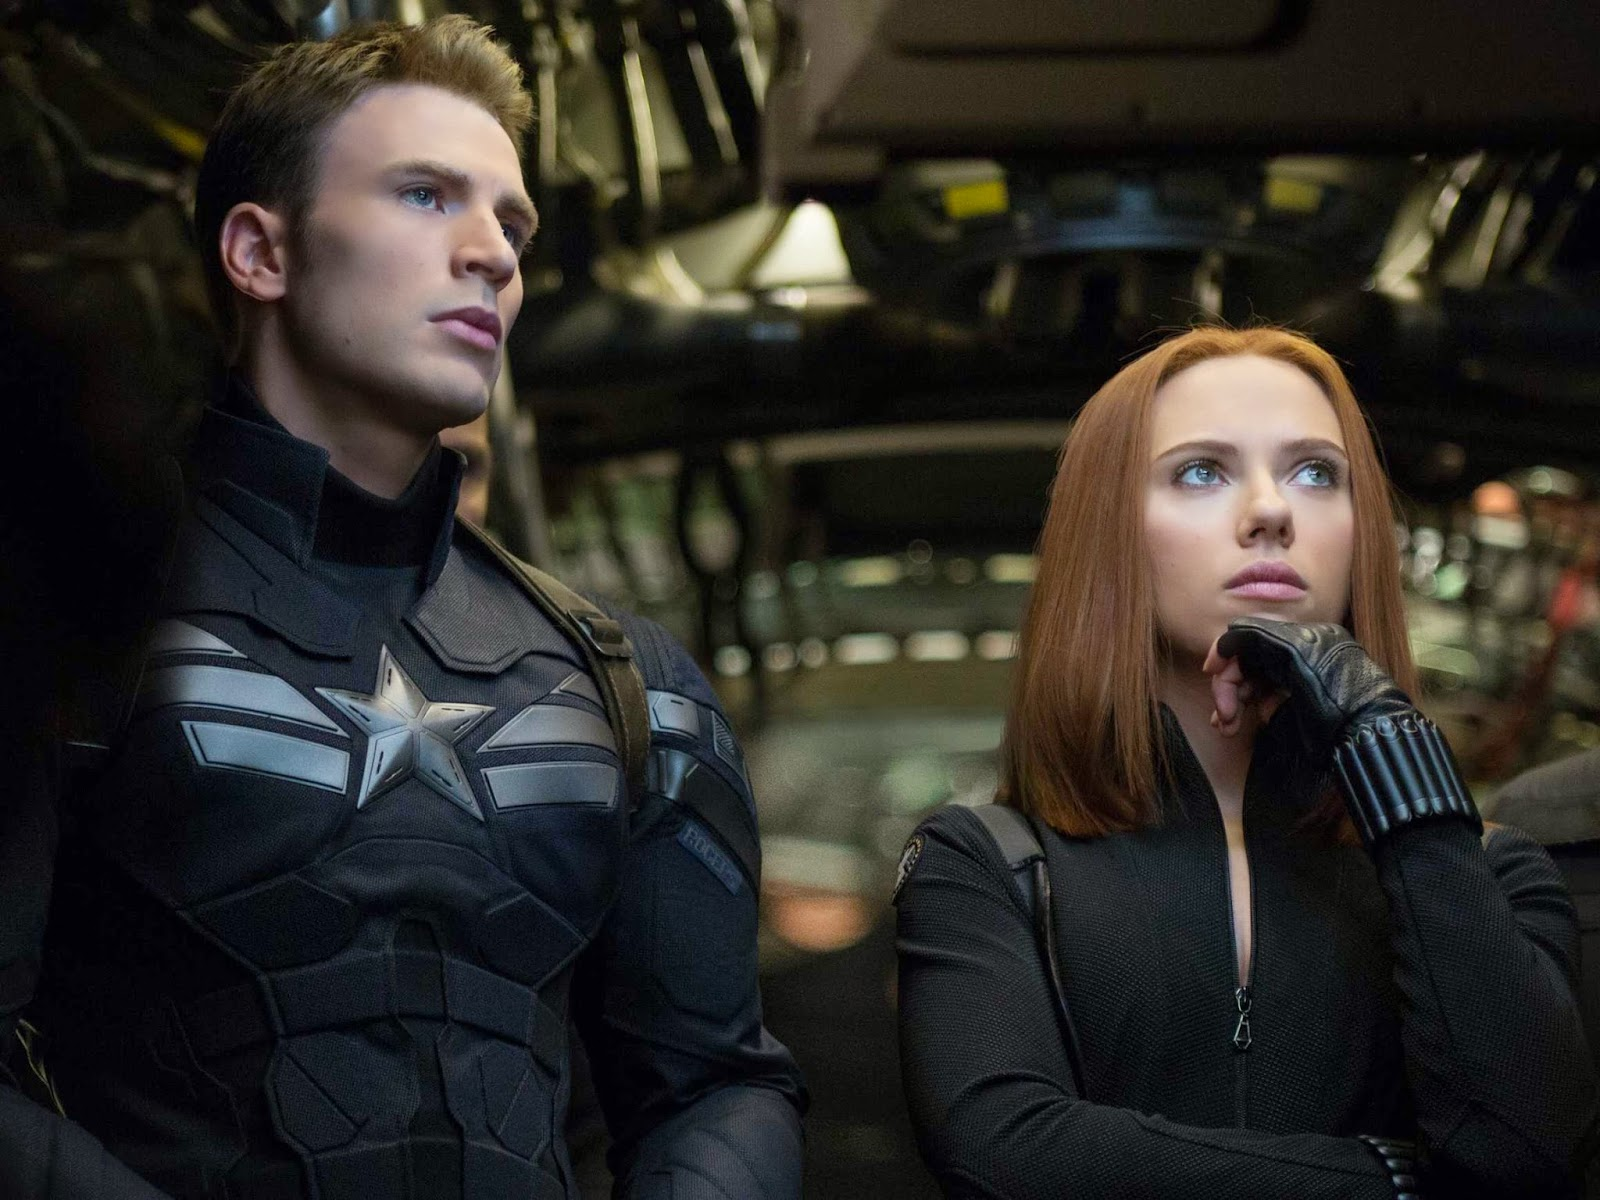 'Captain America: The Winter Soldier': The Captain Returns in High-Action Sequel. Review of the Marvel sequel. Text © Rissi JC